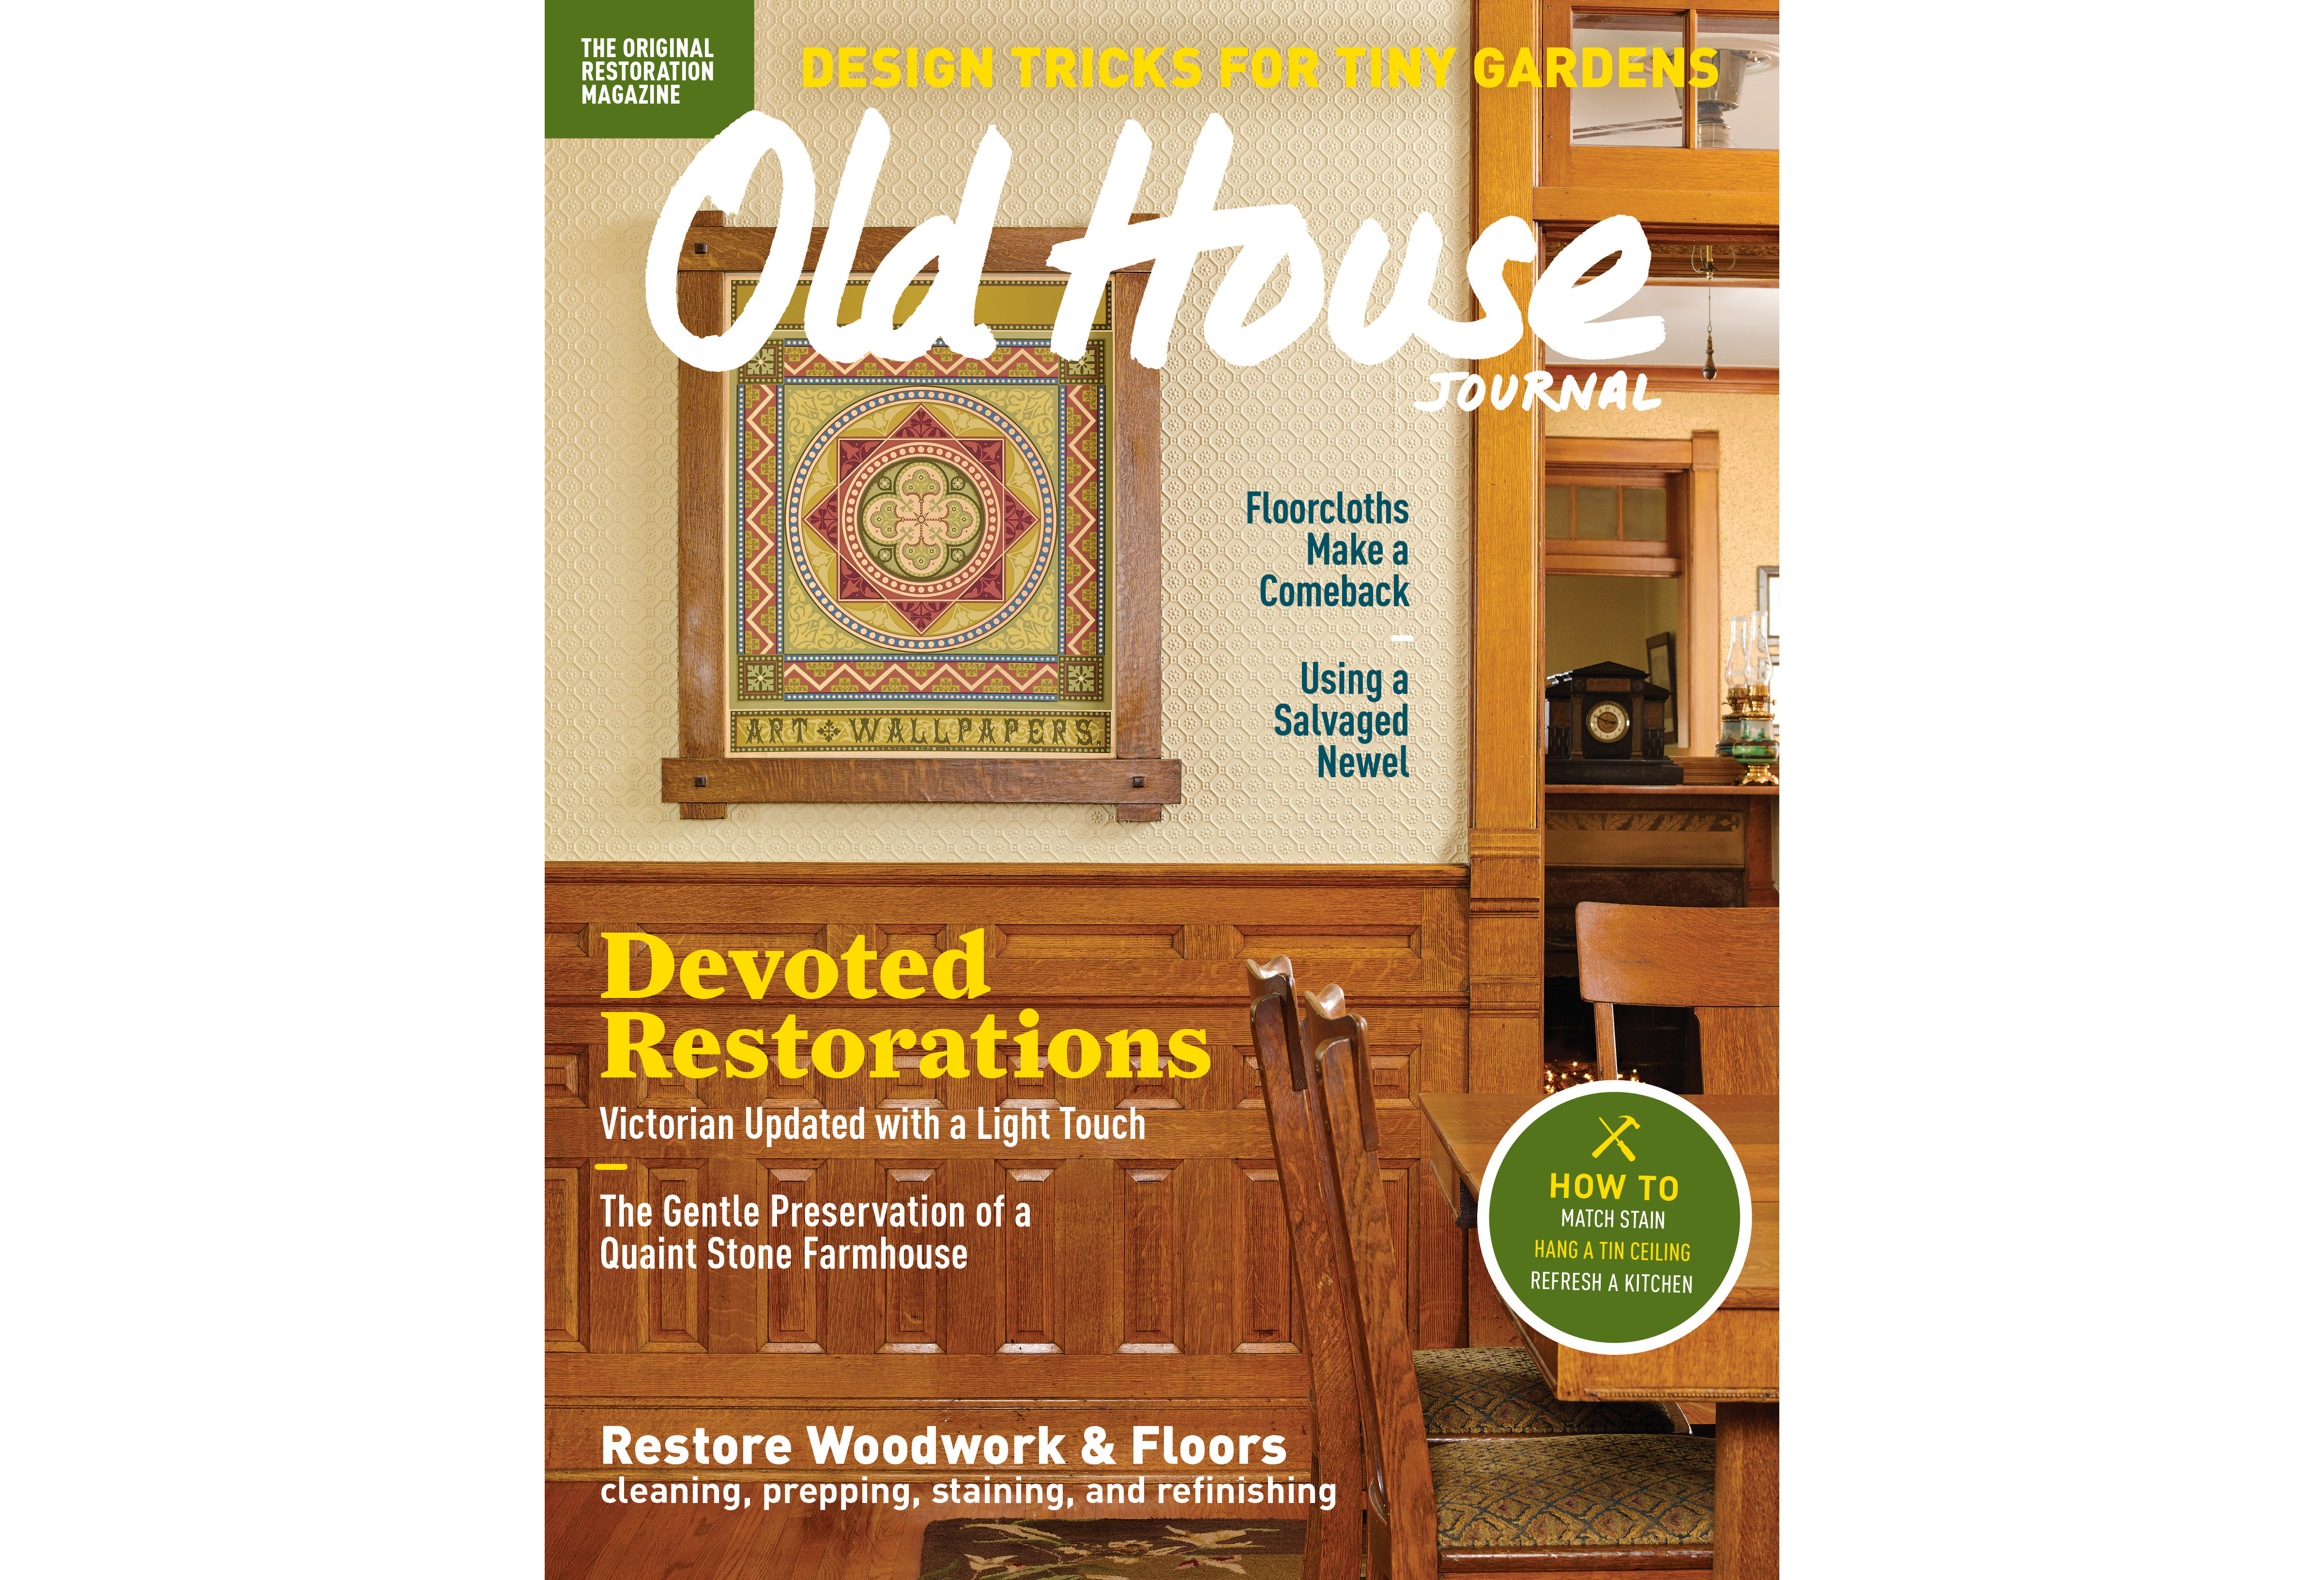 WORX Circular Saw in Old House Journal